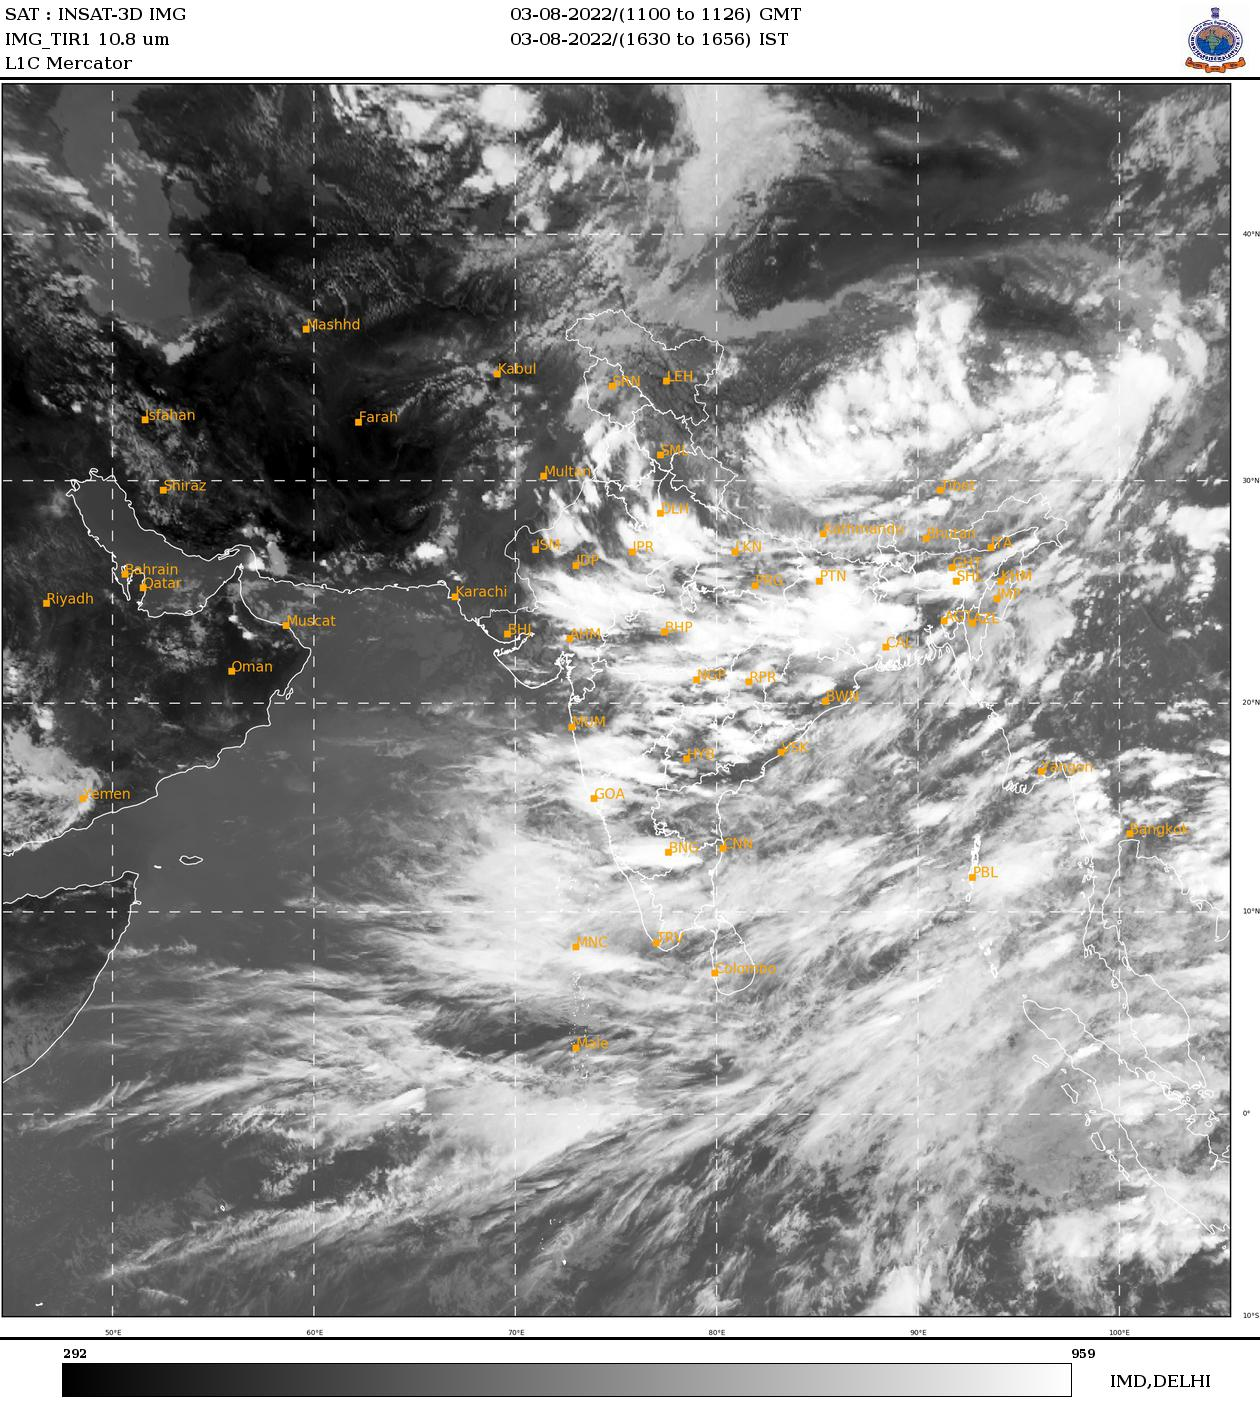 Infrared Imagery INSAT